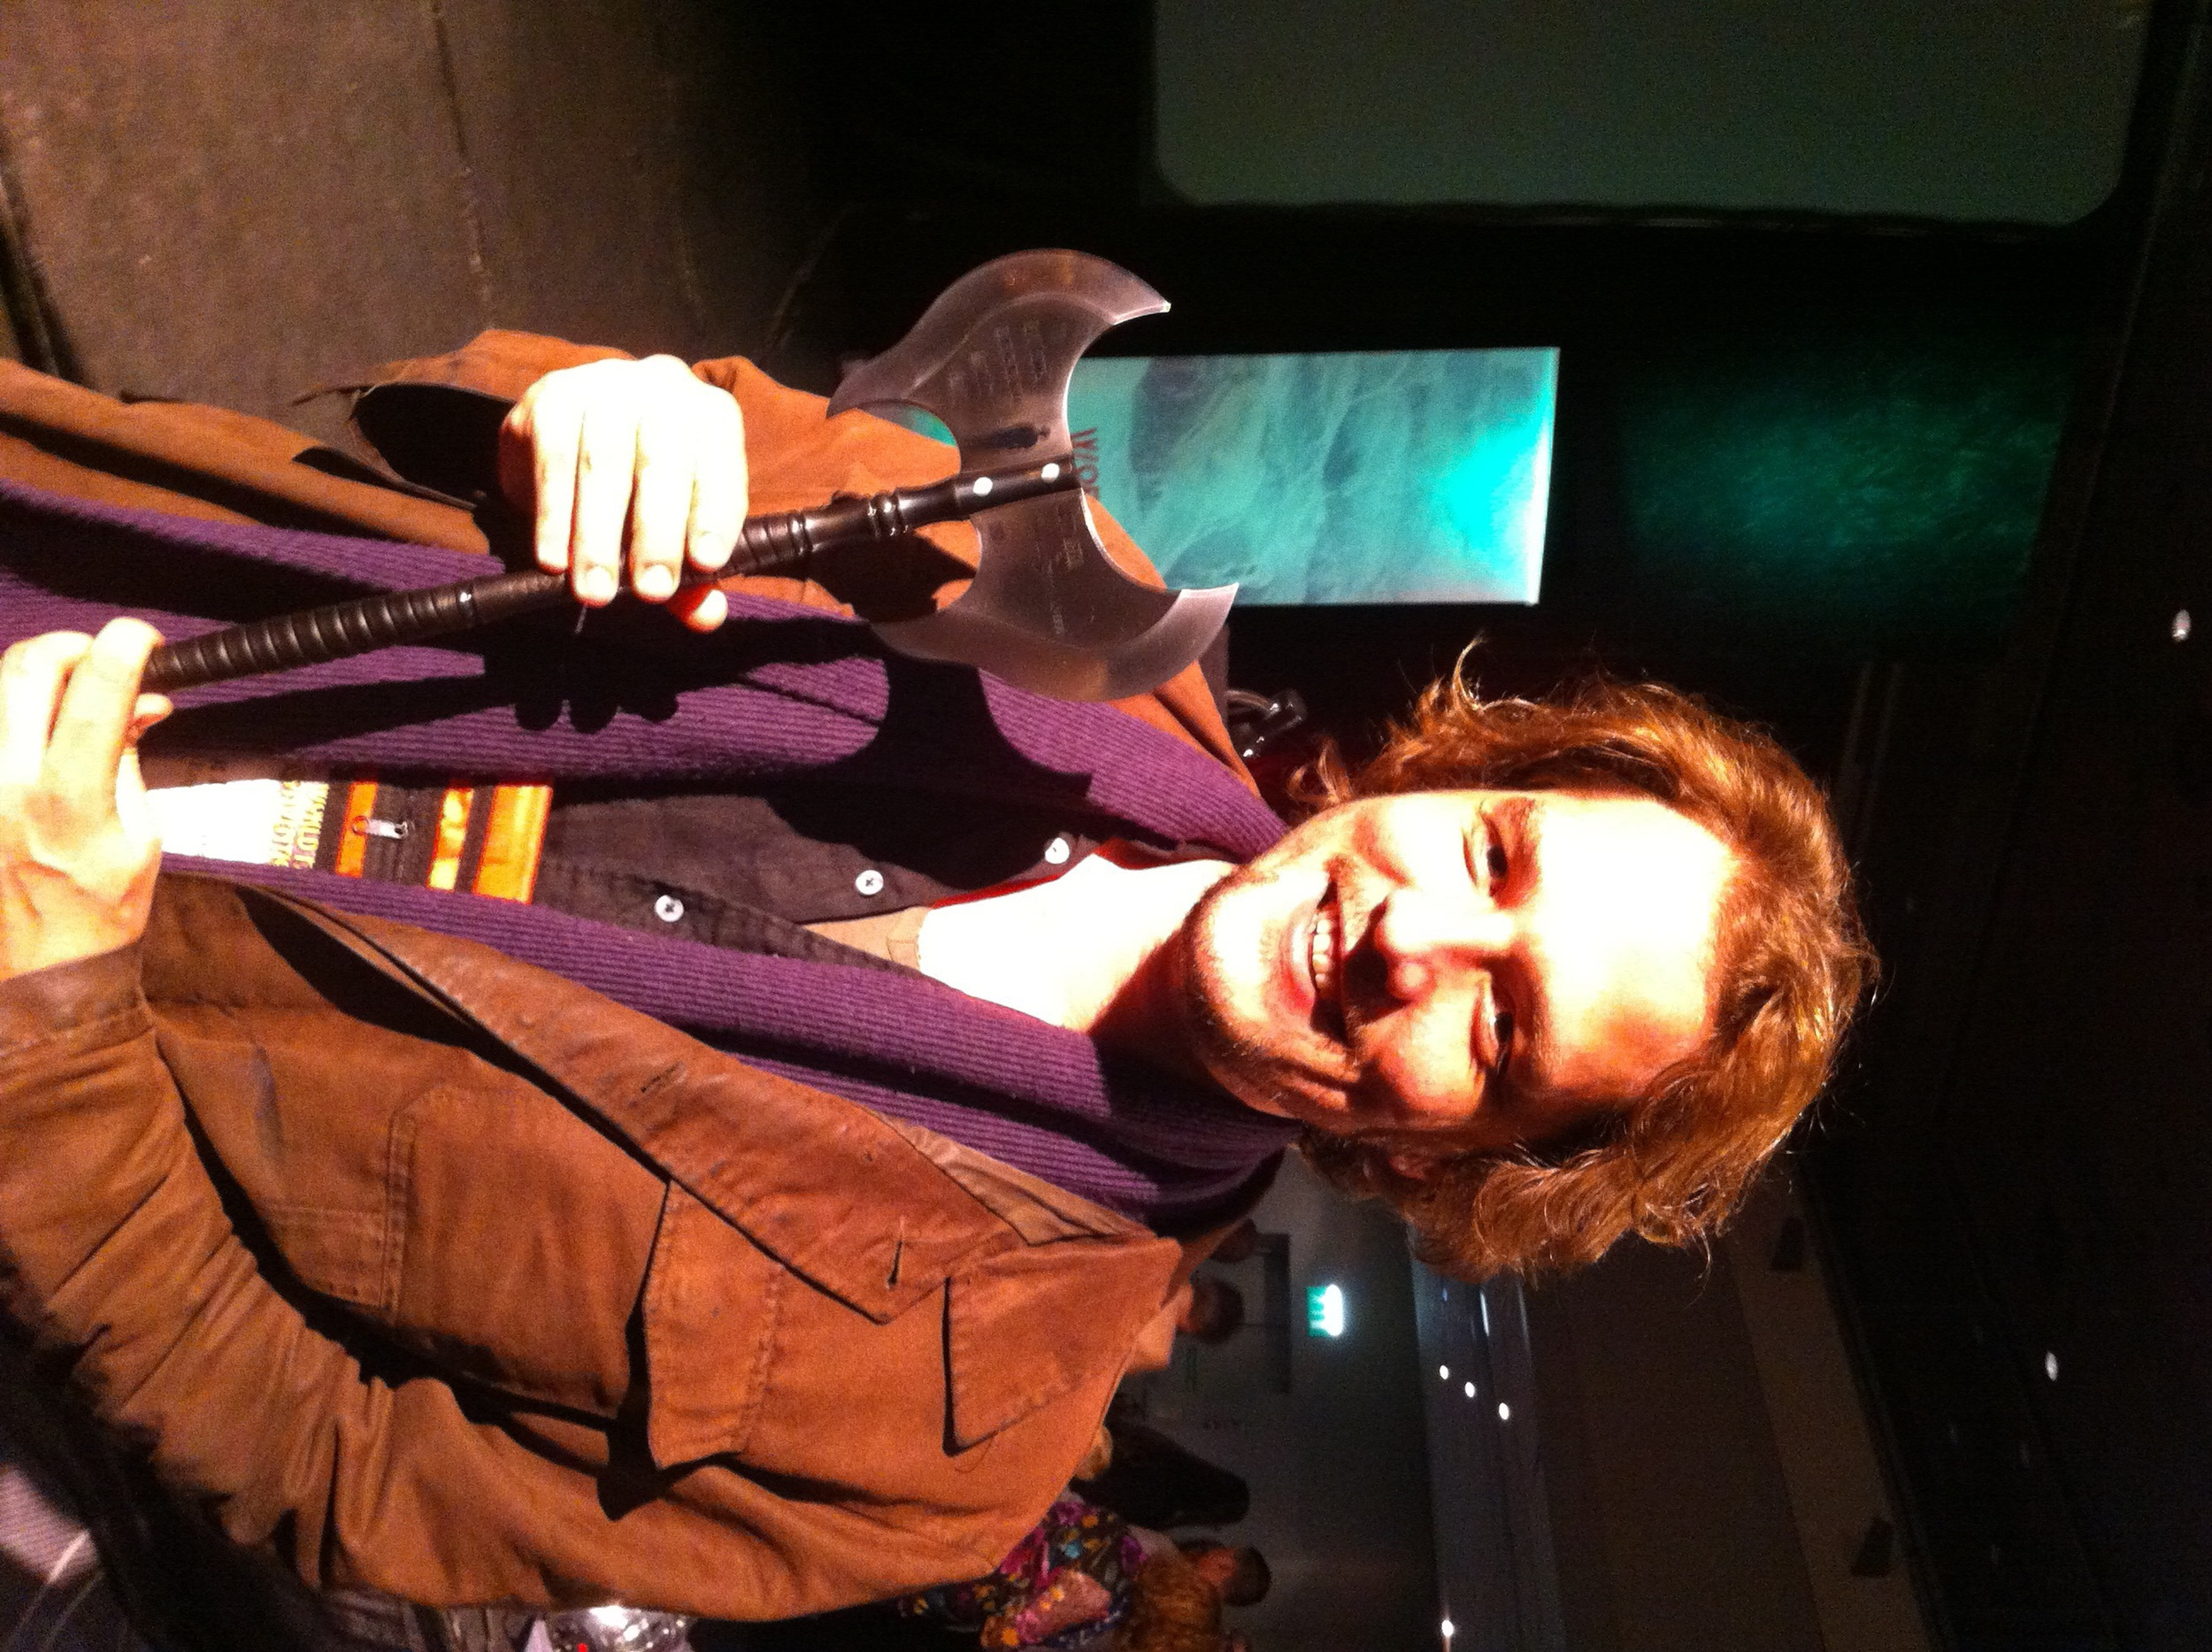 Me at Gemmell Awards holding Brent Weeks' award!